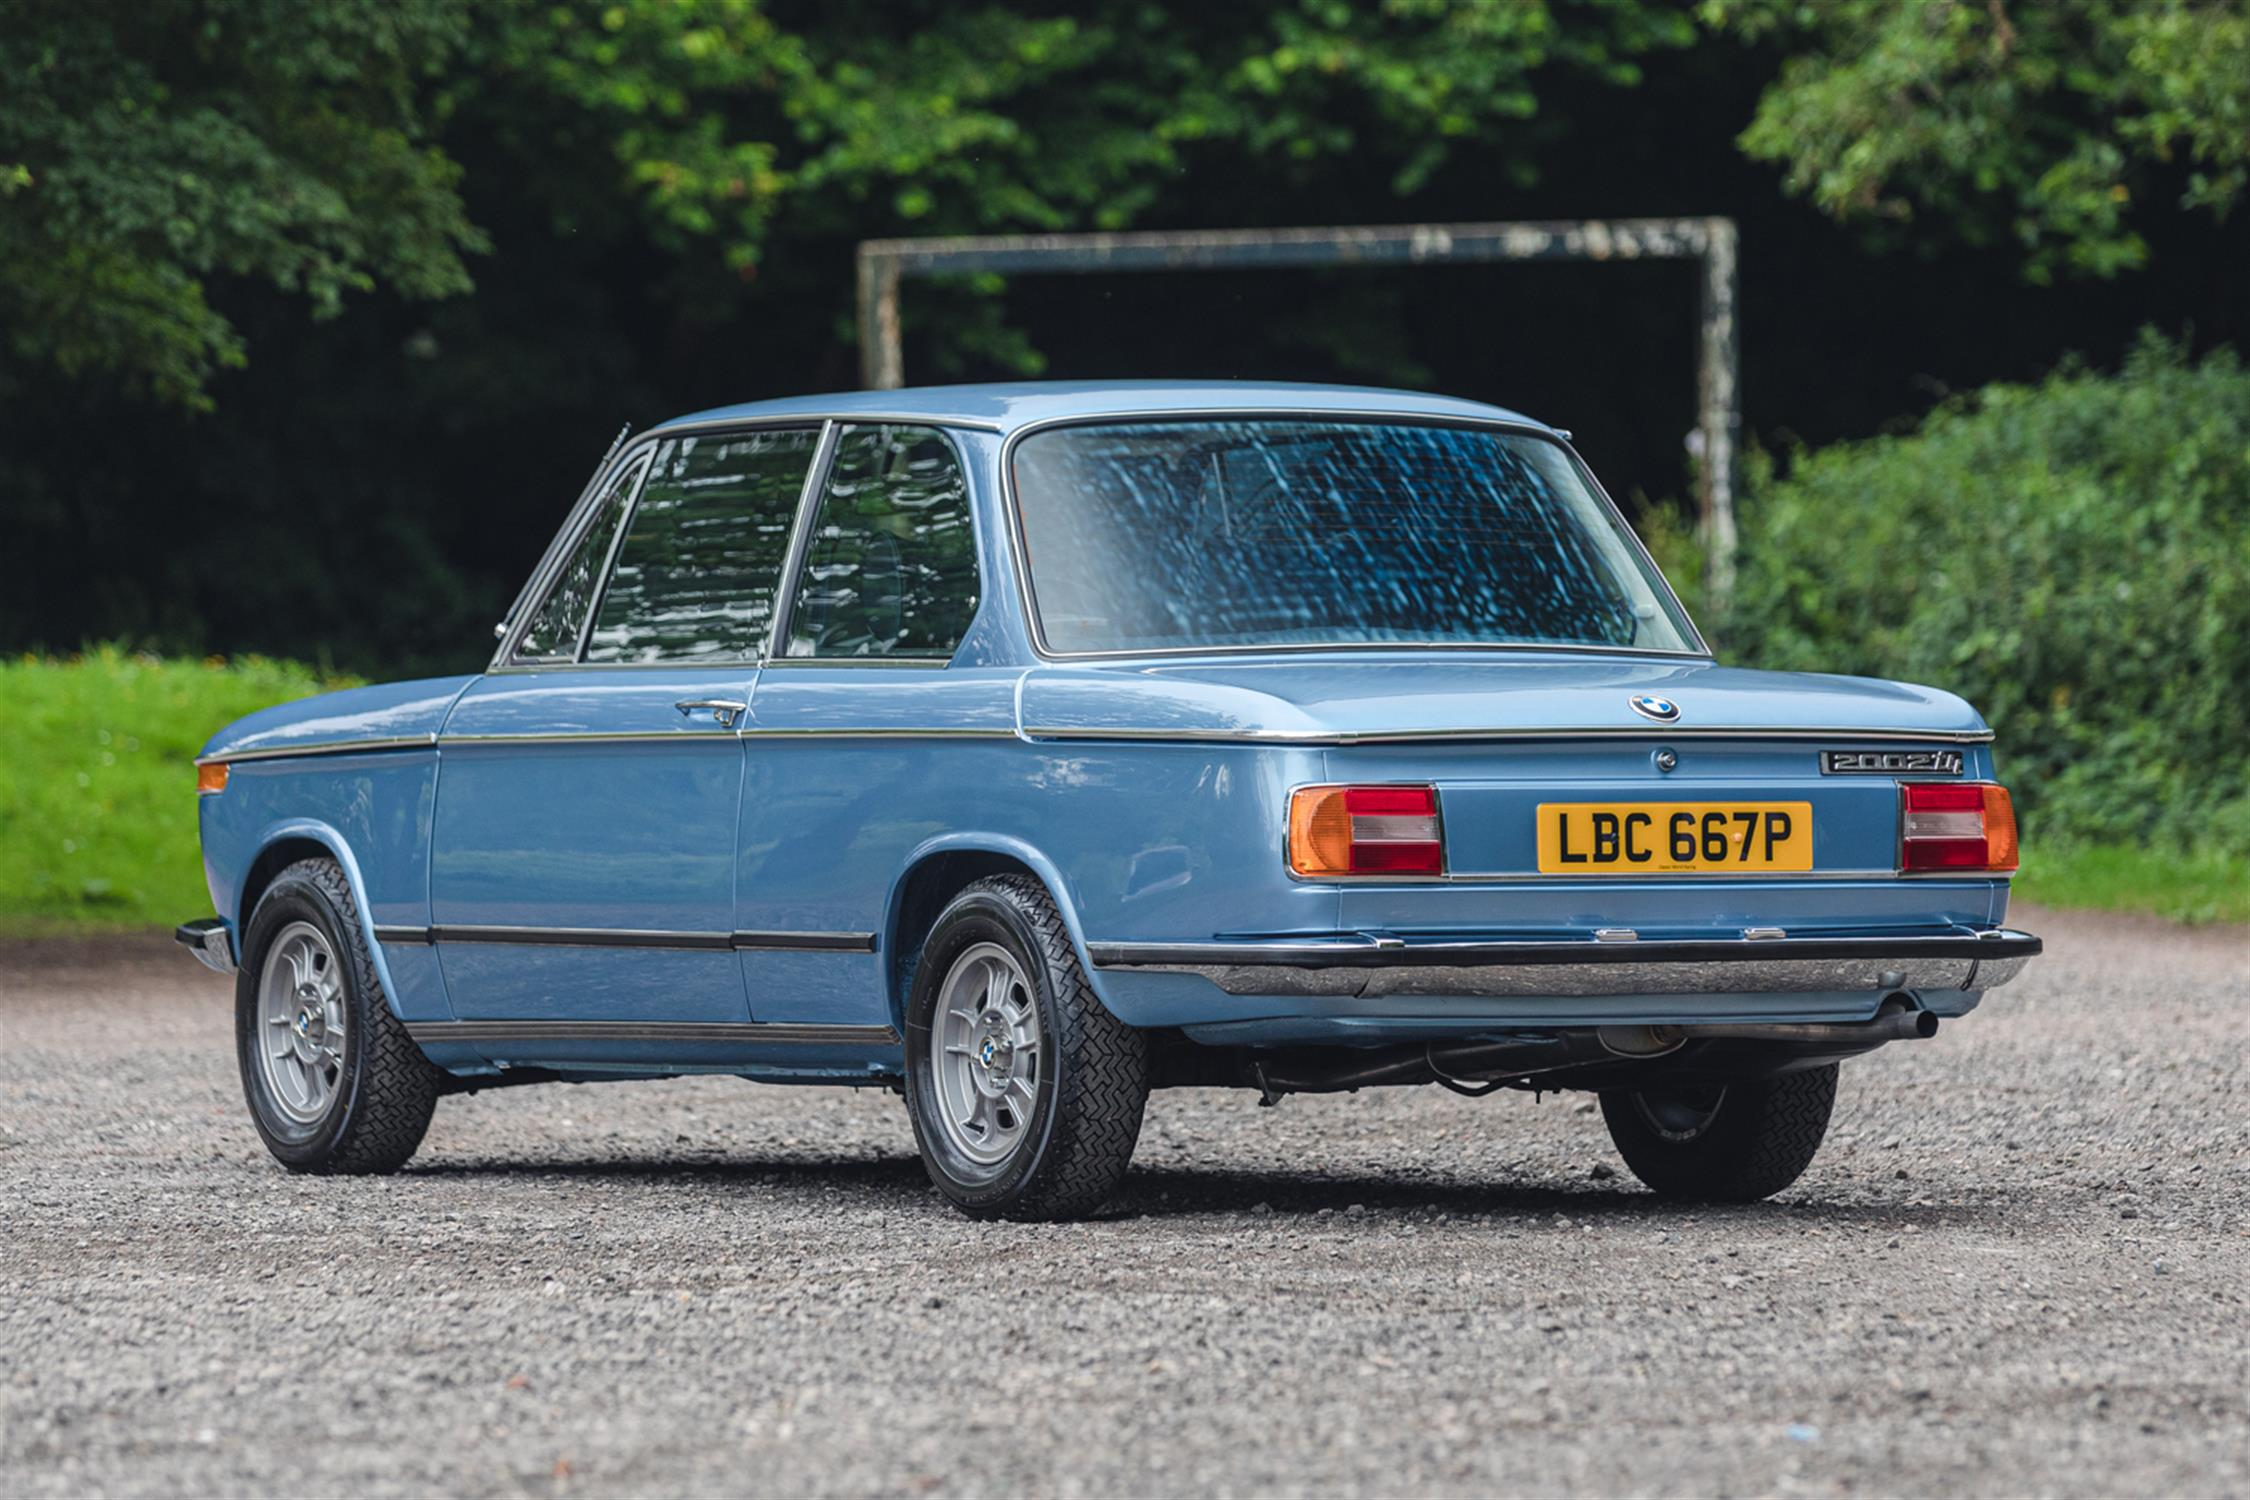 1975 BMW 2002 Tii - Image 5 of 10